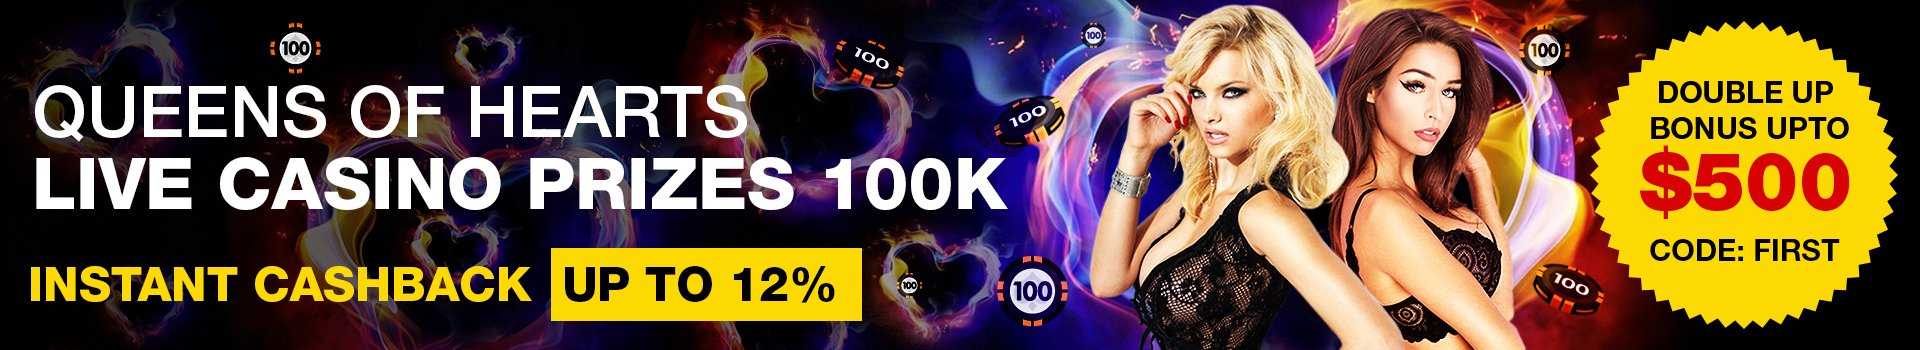 World sexiest live casino dealers